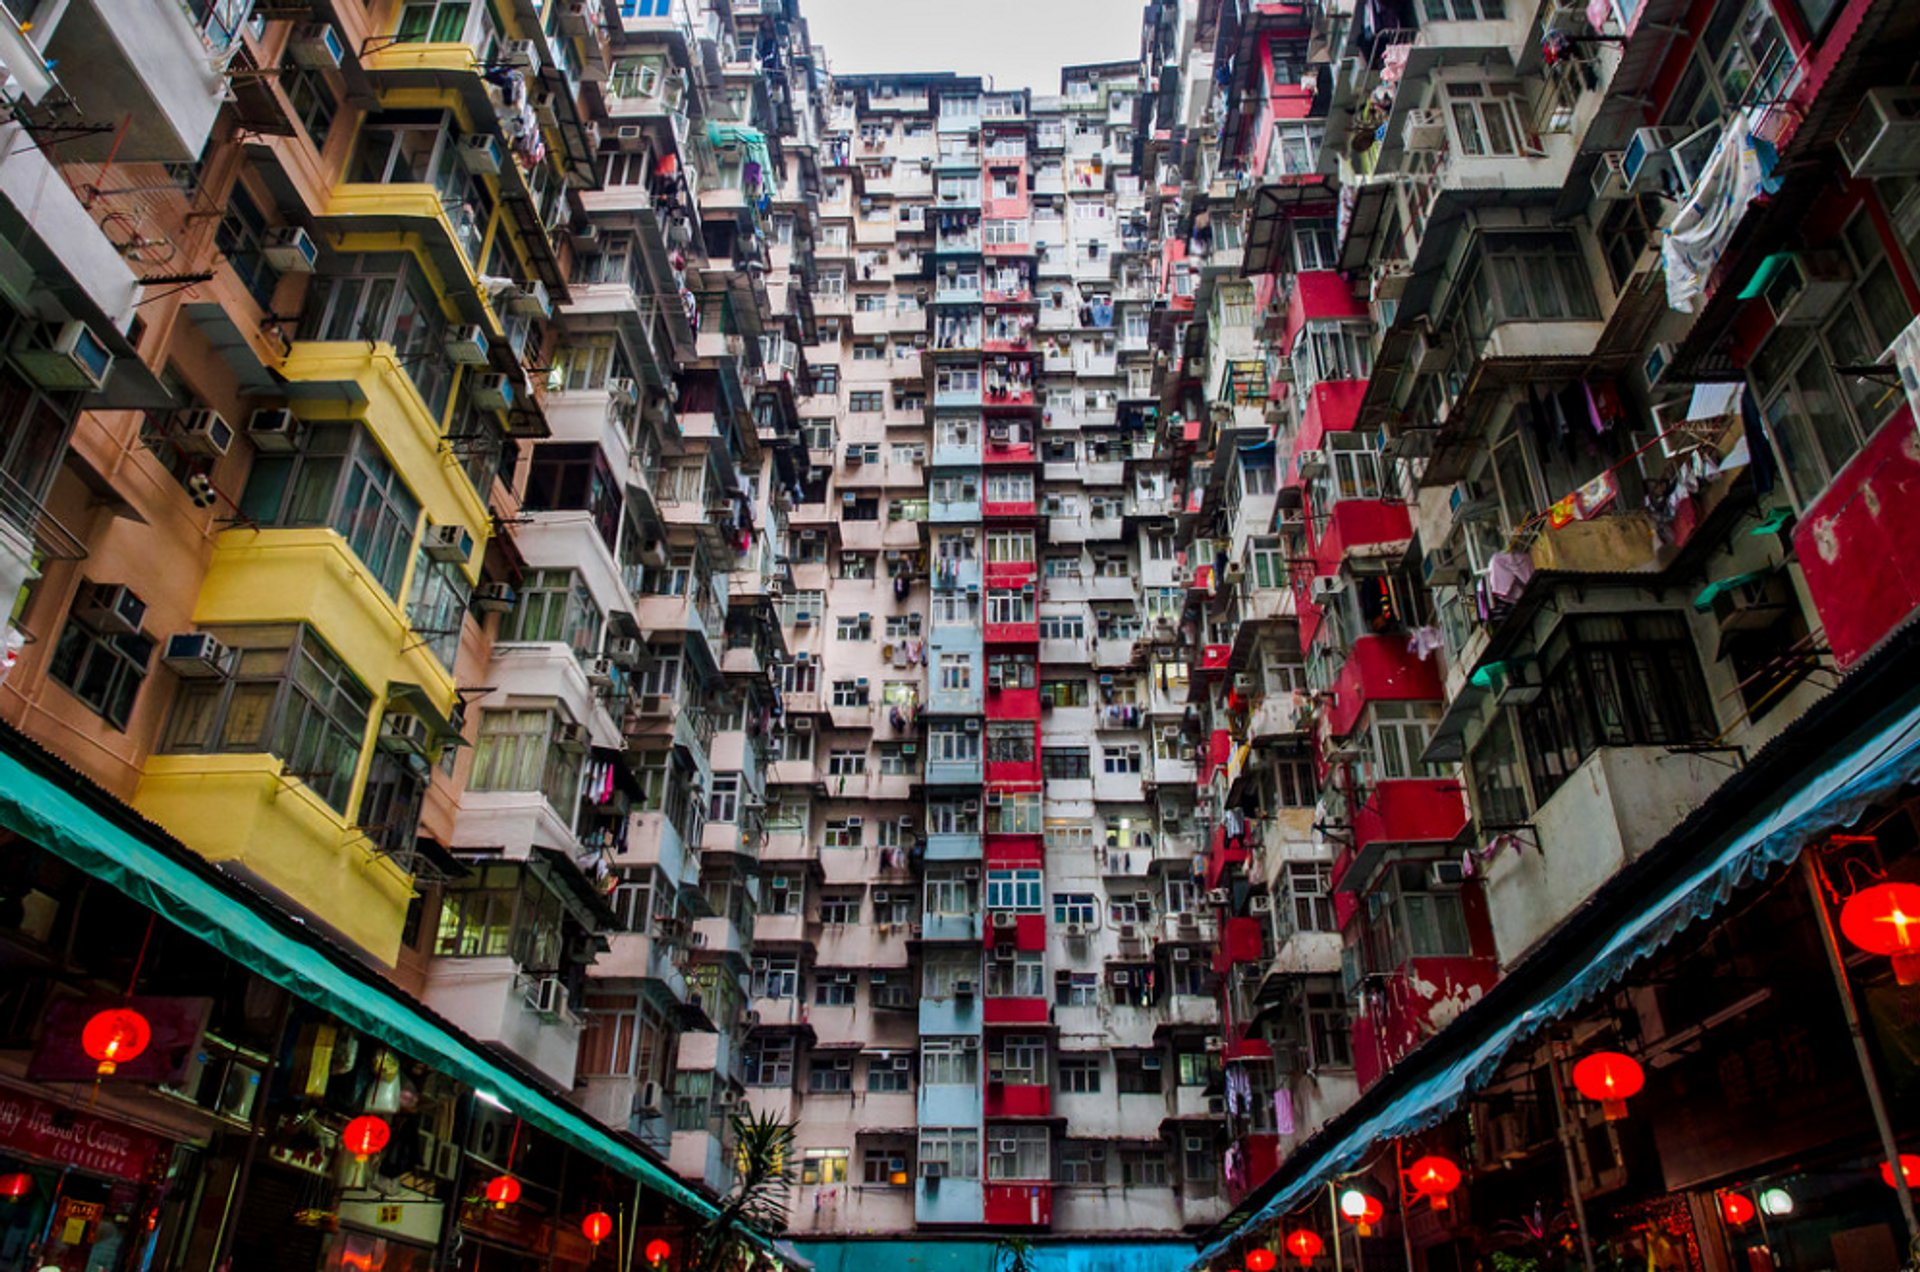 Quarry Bay 'Monster Building' in Hong Kong 2020 - Best Time